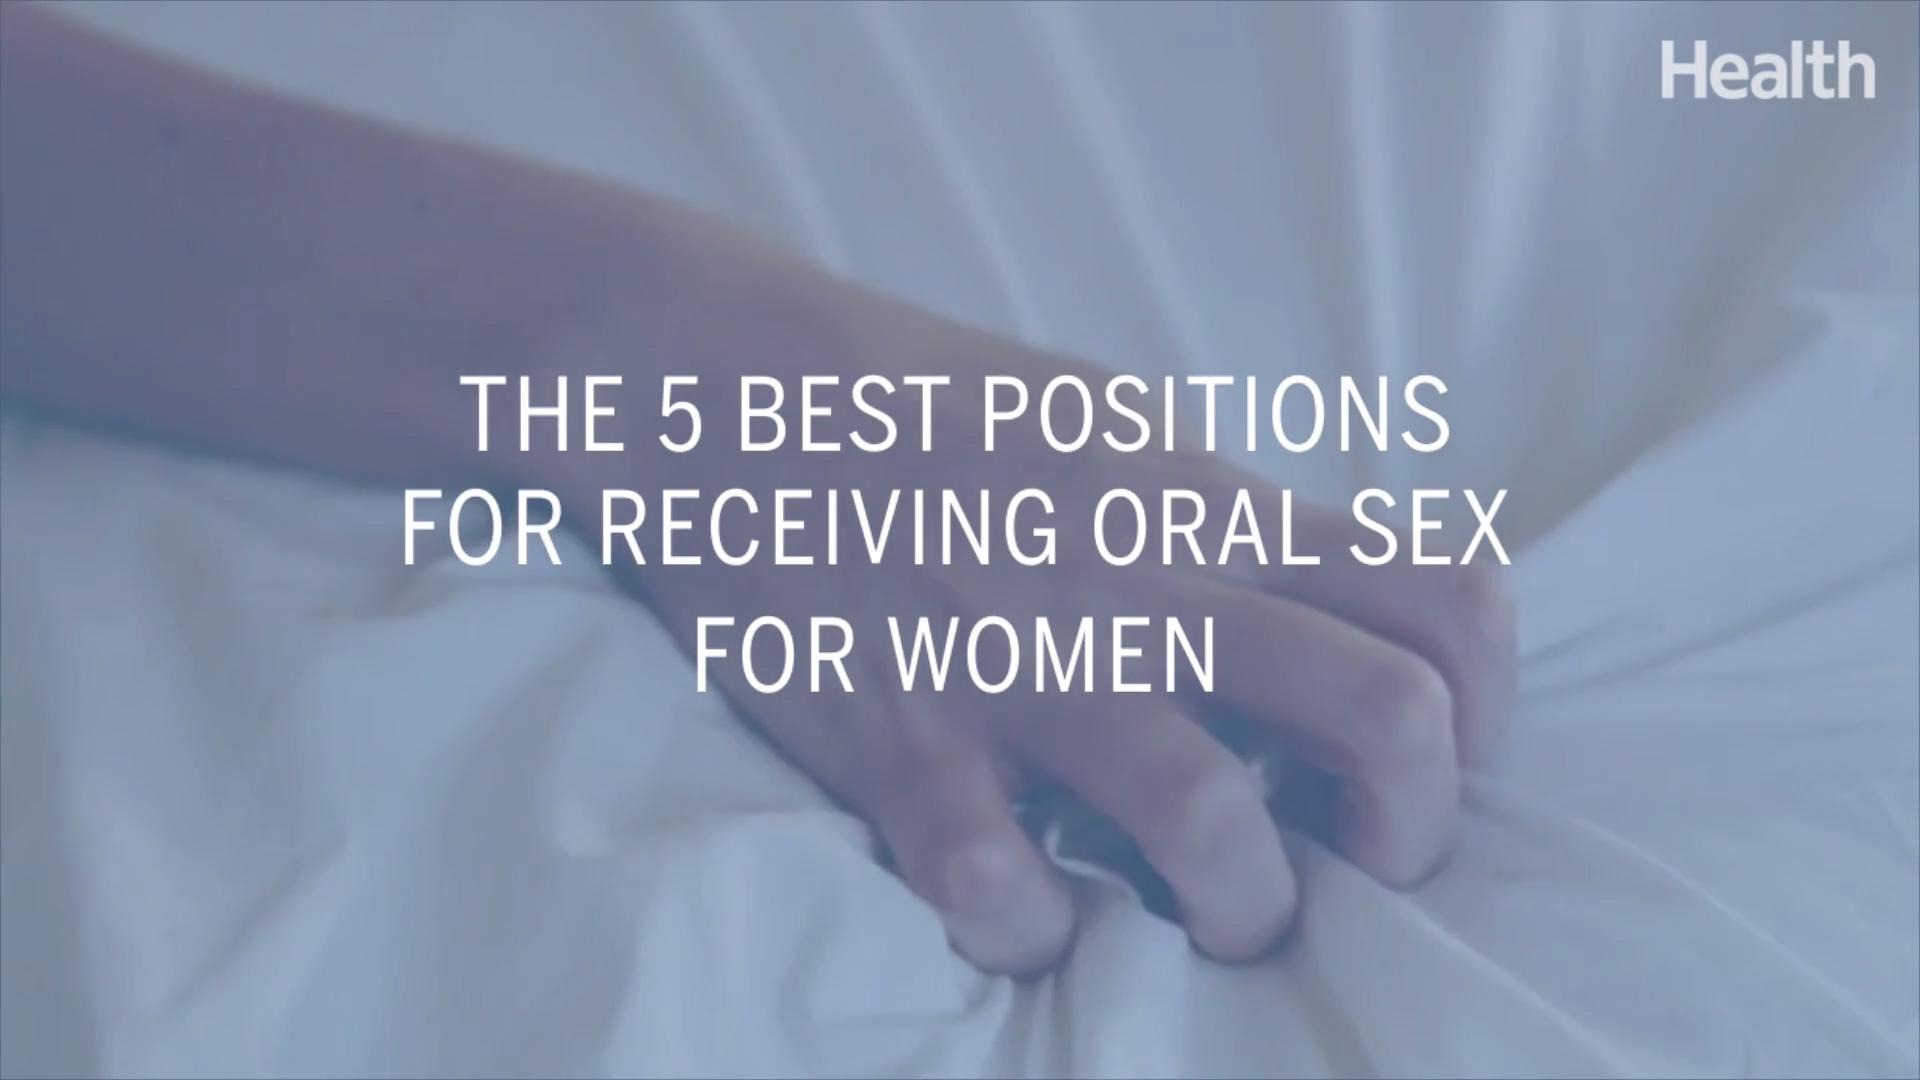 Something preferences for oral sex commit